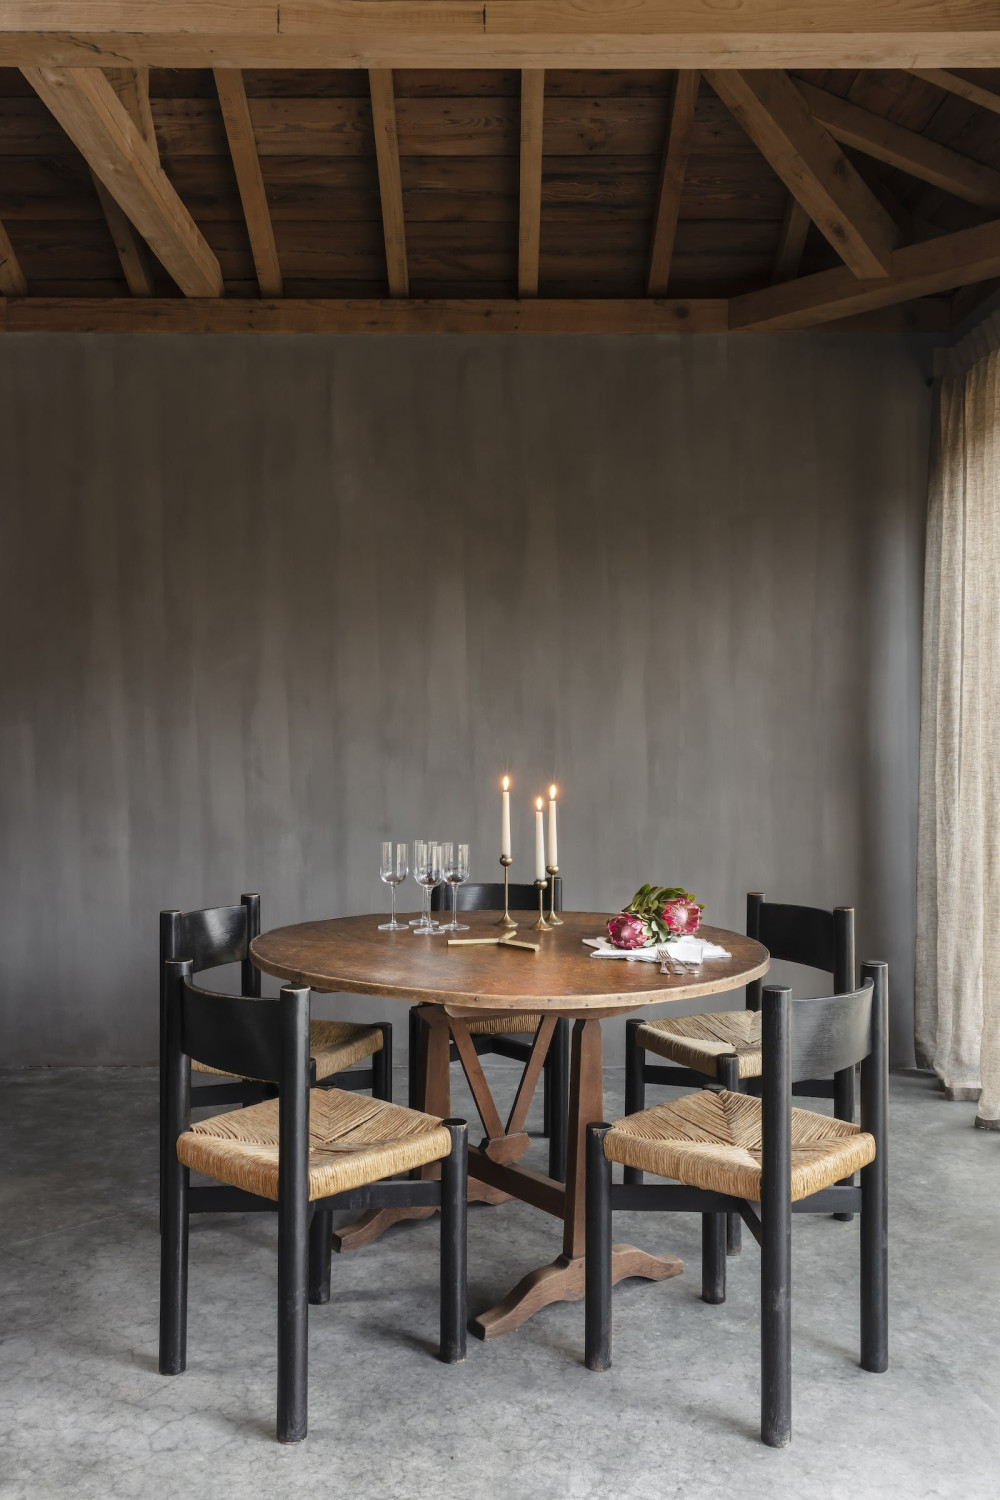 ignant-architecture-andy-kerstens-mud-residence-05.jpg